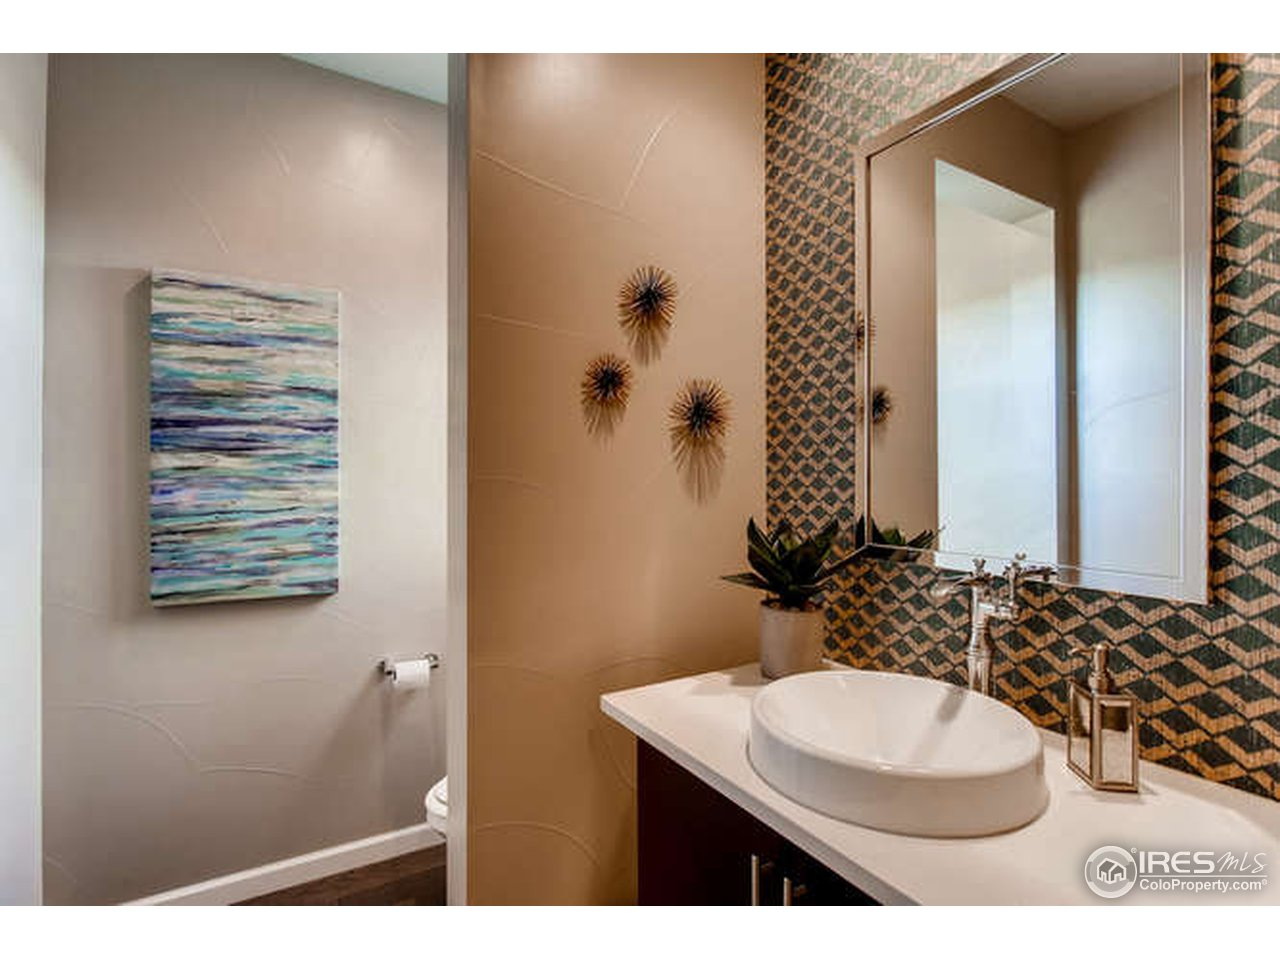 1/2 bath on the main level for entertaining needs